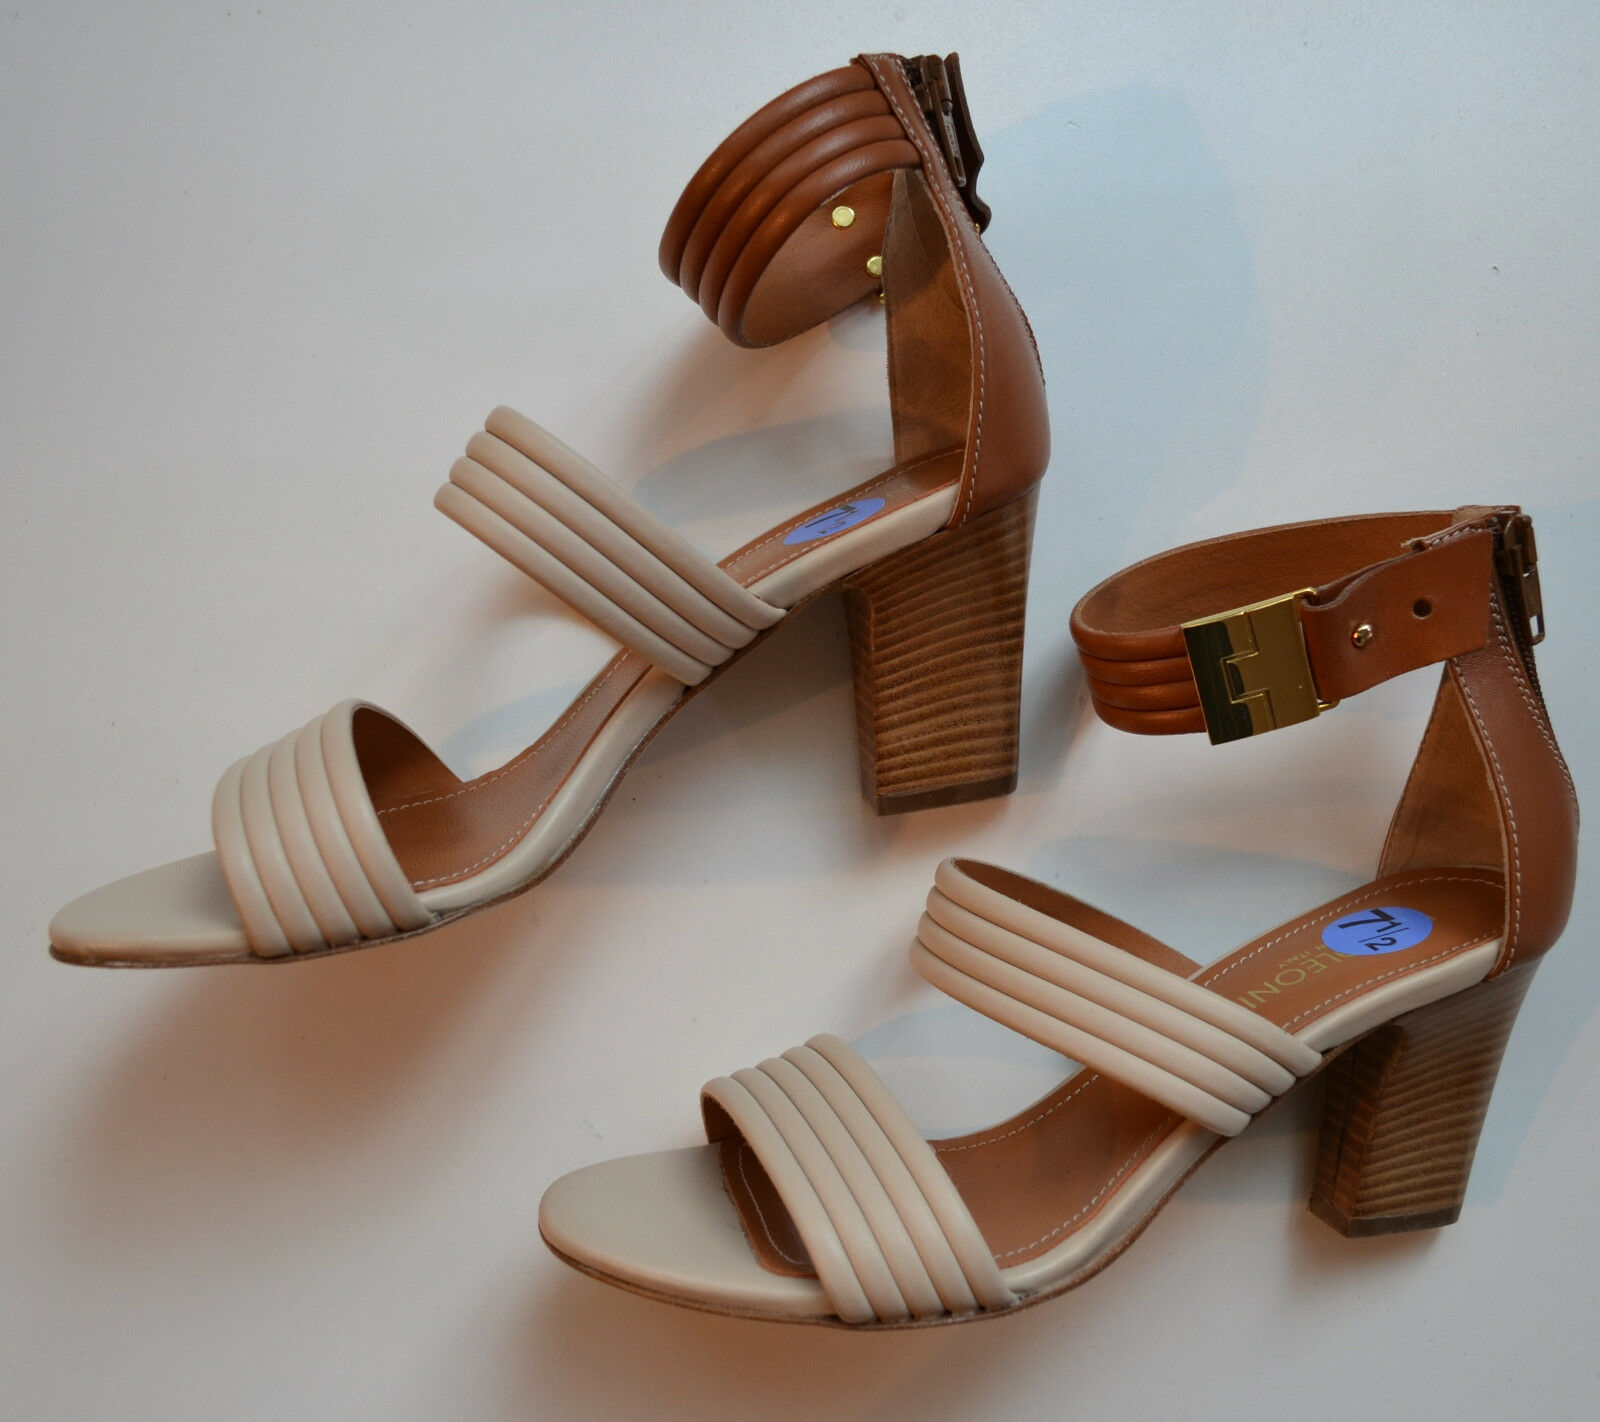 NEW NAPOLEONI  Leather Strap Sandals Size 38(EU) 7.5(US)